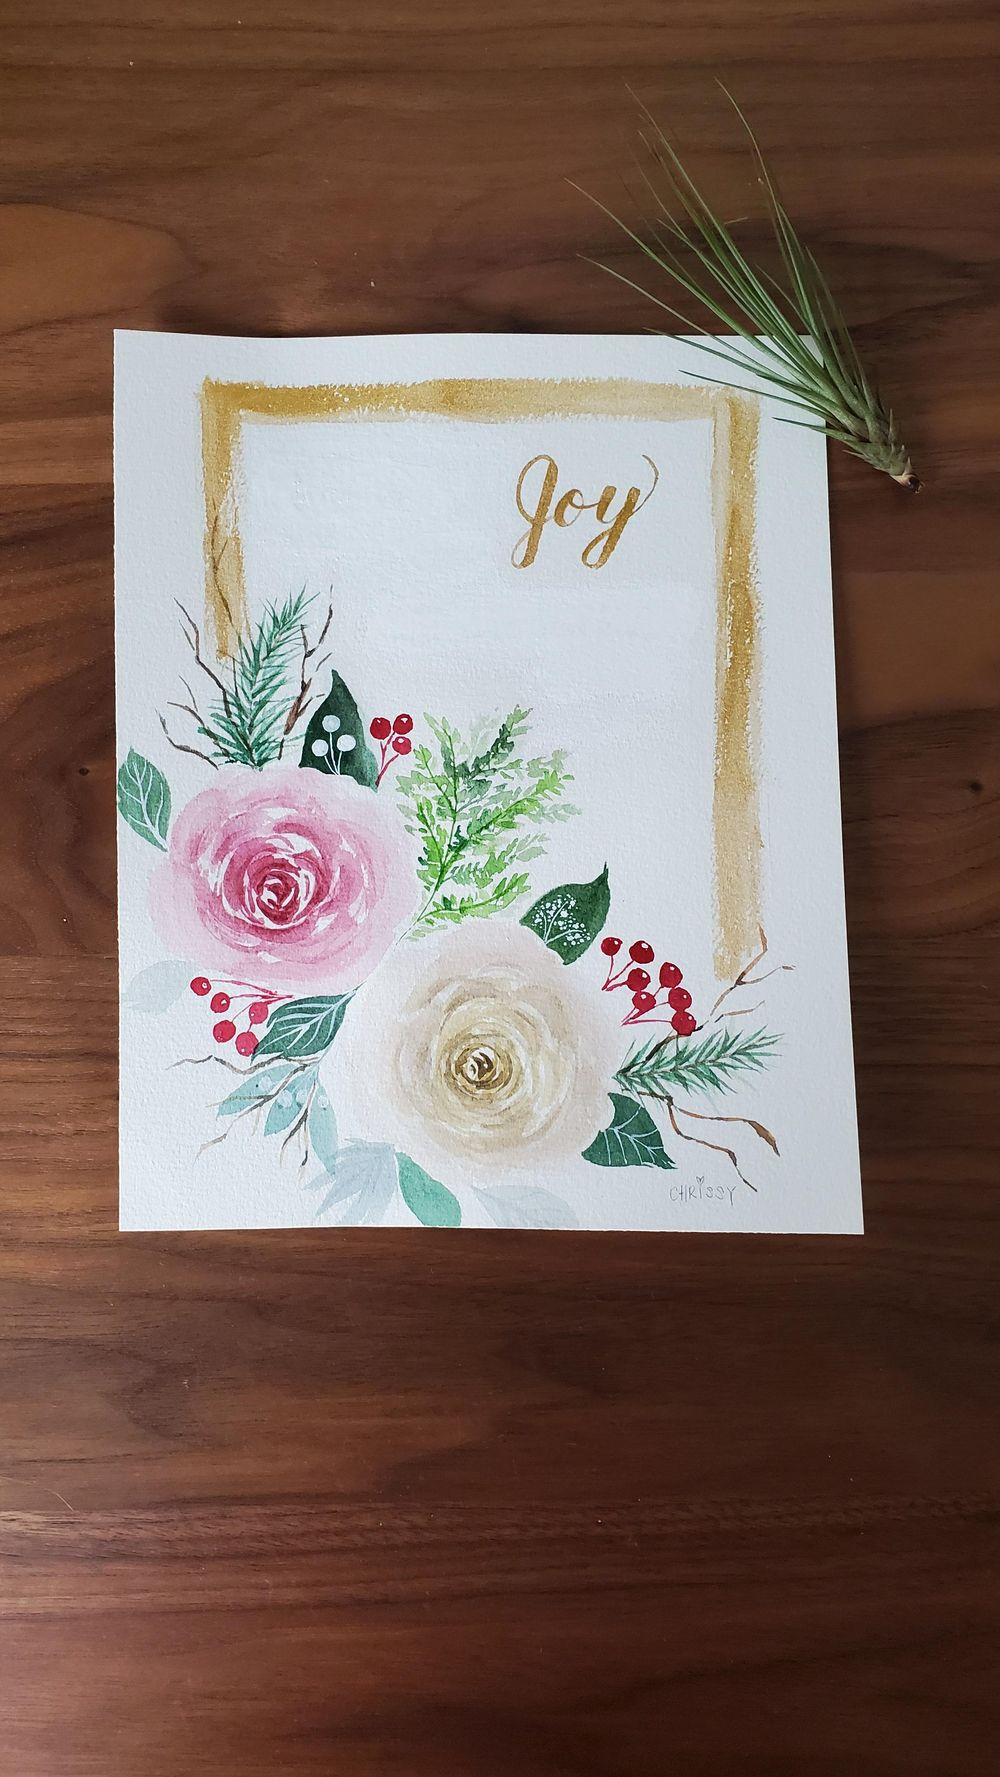 Christmas florals - image 1 - student project